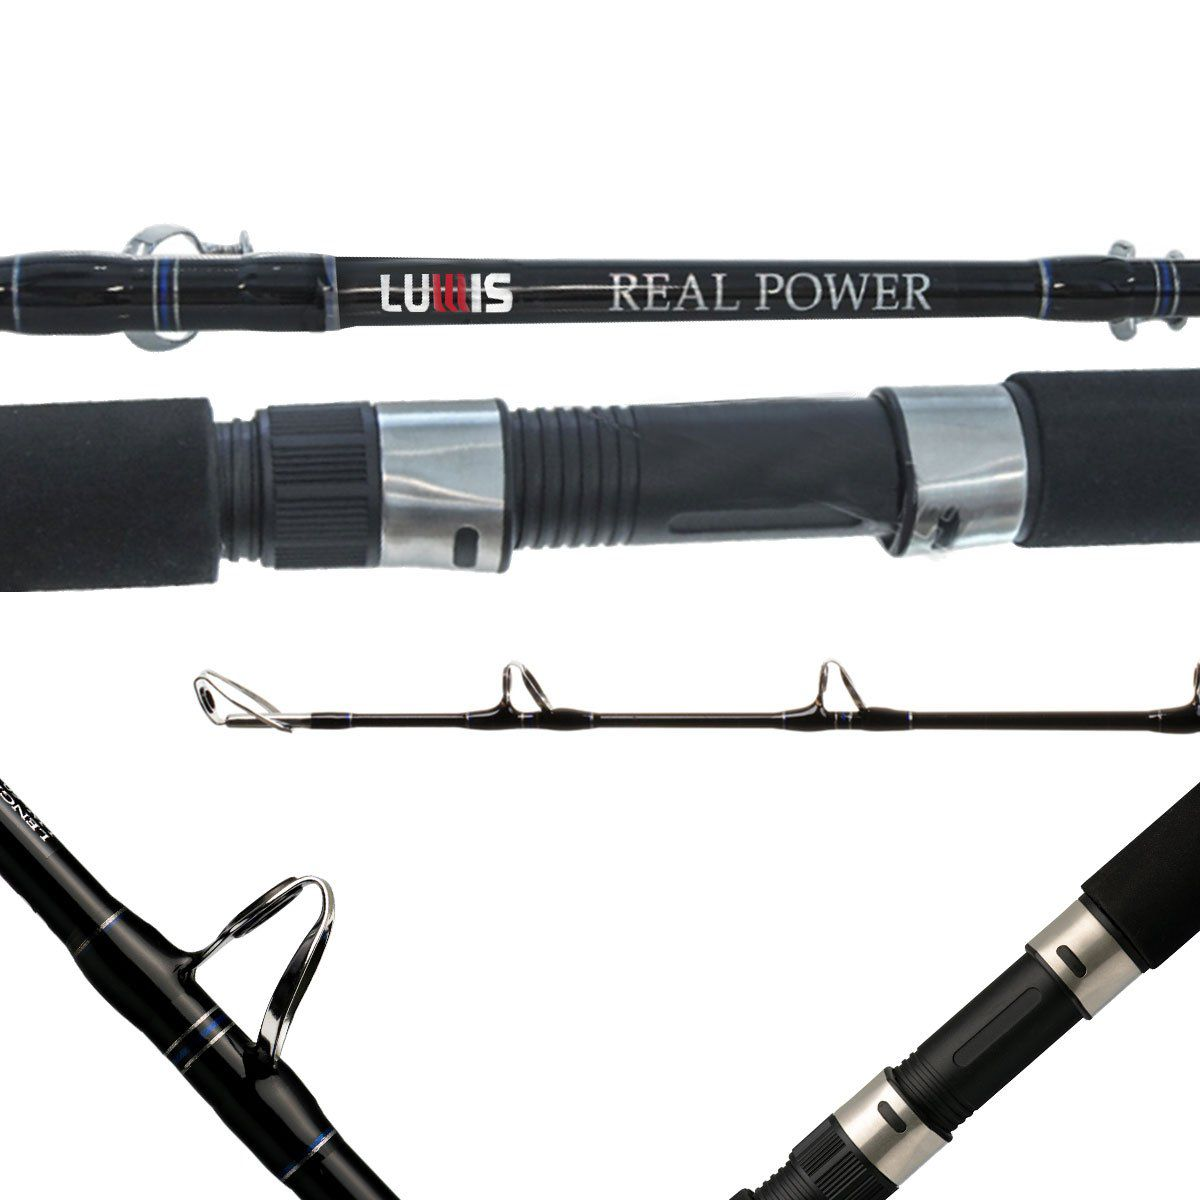 Vara Lumis Real Power Molinete 1,80m 5'9'' Extra Pesada 80-160LB